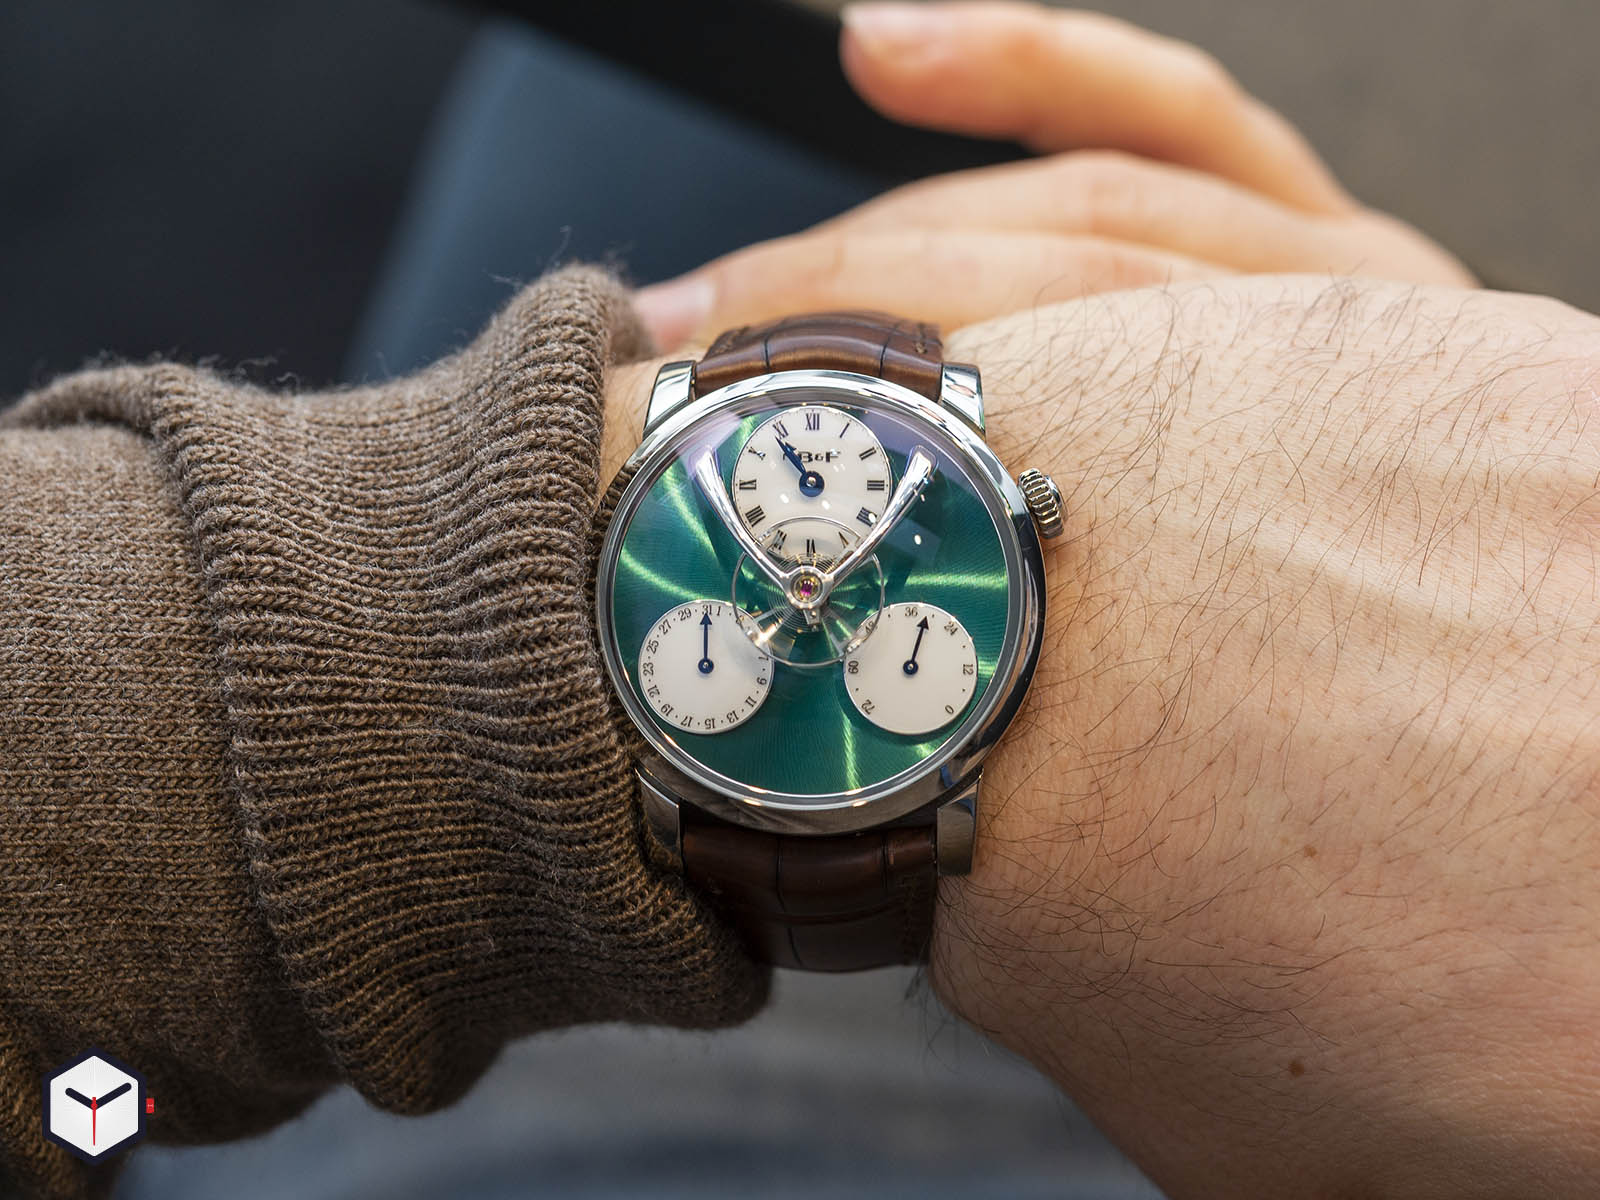 04-tl-g-mb-f-legacy-machine-split-escapement-titanium-green-dial-7.jpg